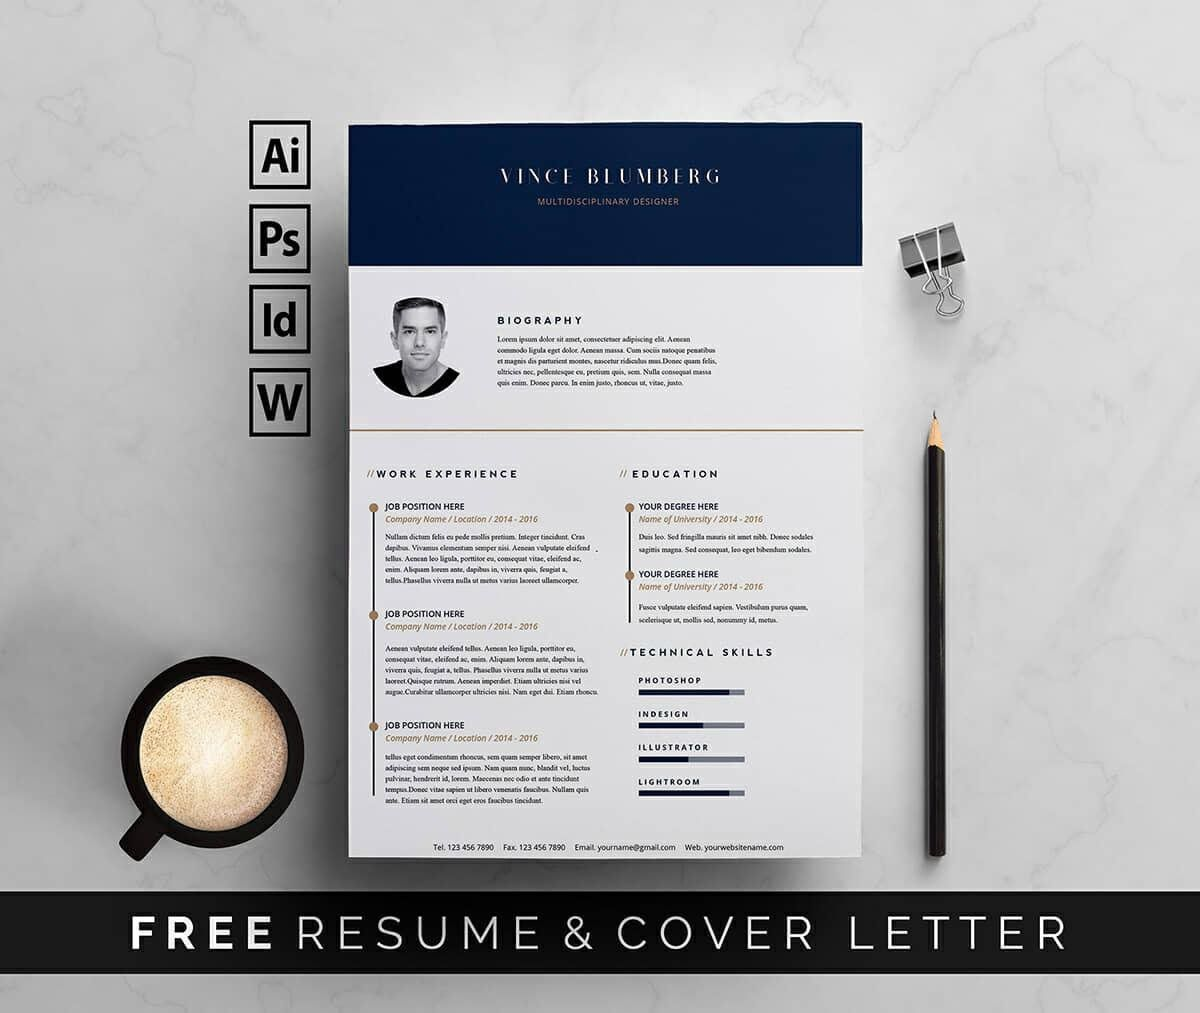 009 Wondrou Free Cv Template Word Sample  Download South Africa In Format OnlineFull